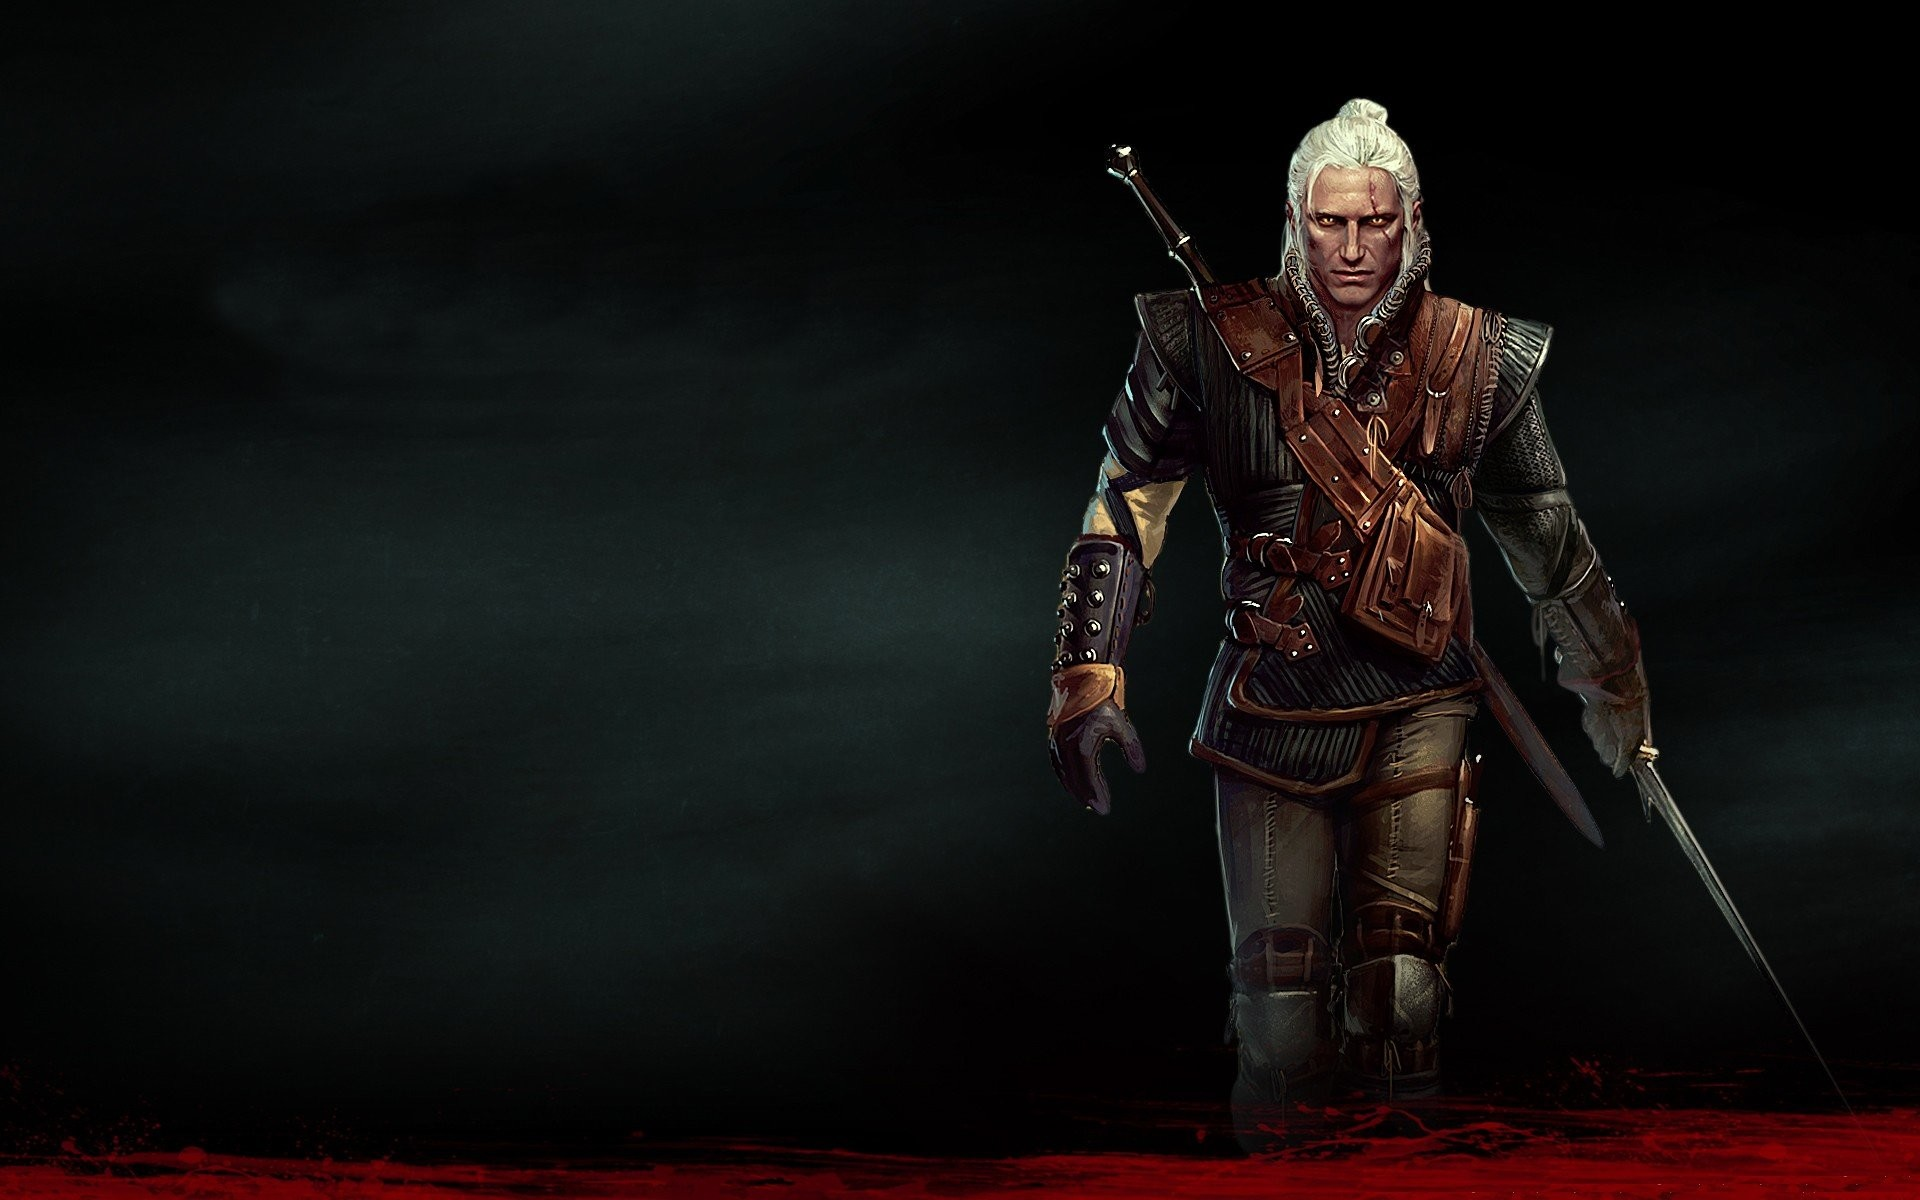 1920x1200 The Witcher Geralt of Rivia The Witcher 2: Assassins of Kings white wolf  school of wolf wallpaper |  | 274973 | WallpaperUP